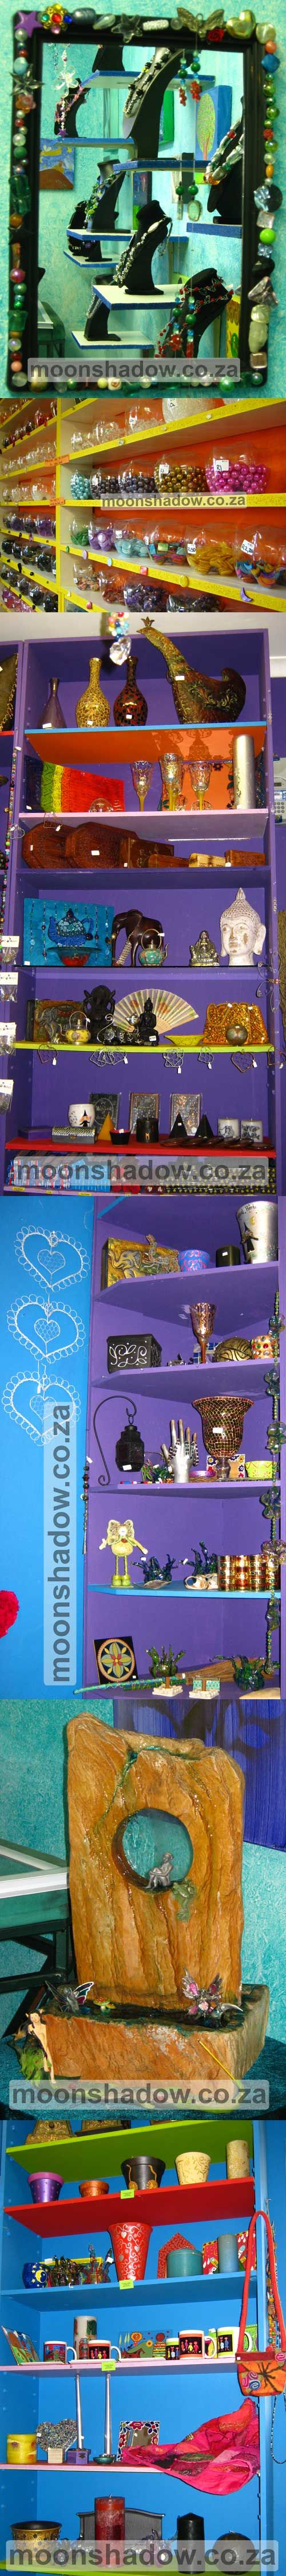 #Moonshadow Gift Shop offers unique gifts, hand-crafted and imported.  #Swellendam, #Overberg